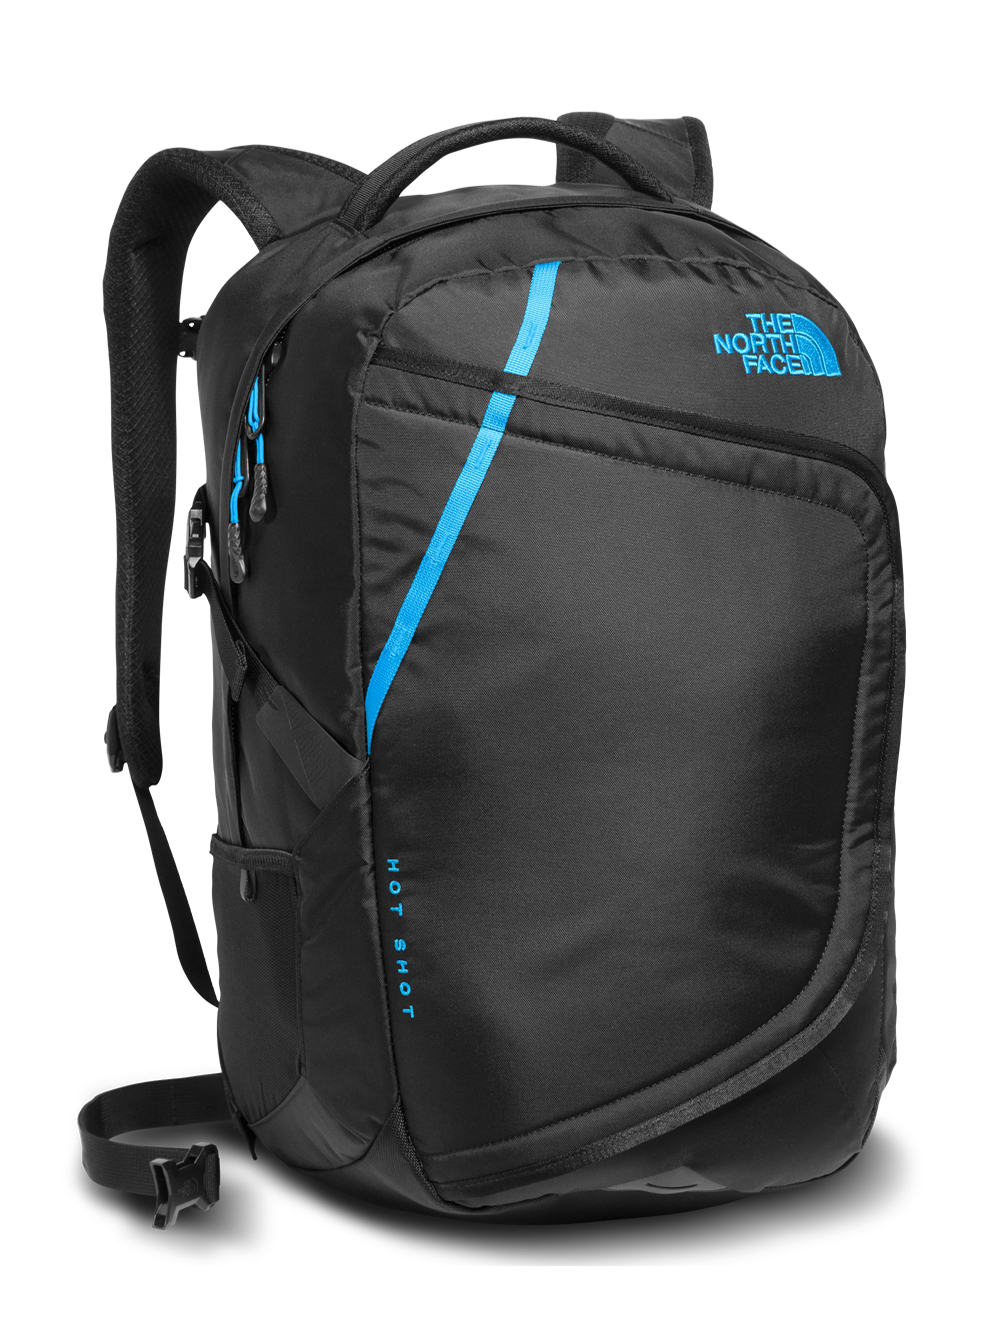 The North Face Hot Shot Backpack - black/hyper blue, one size